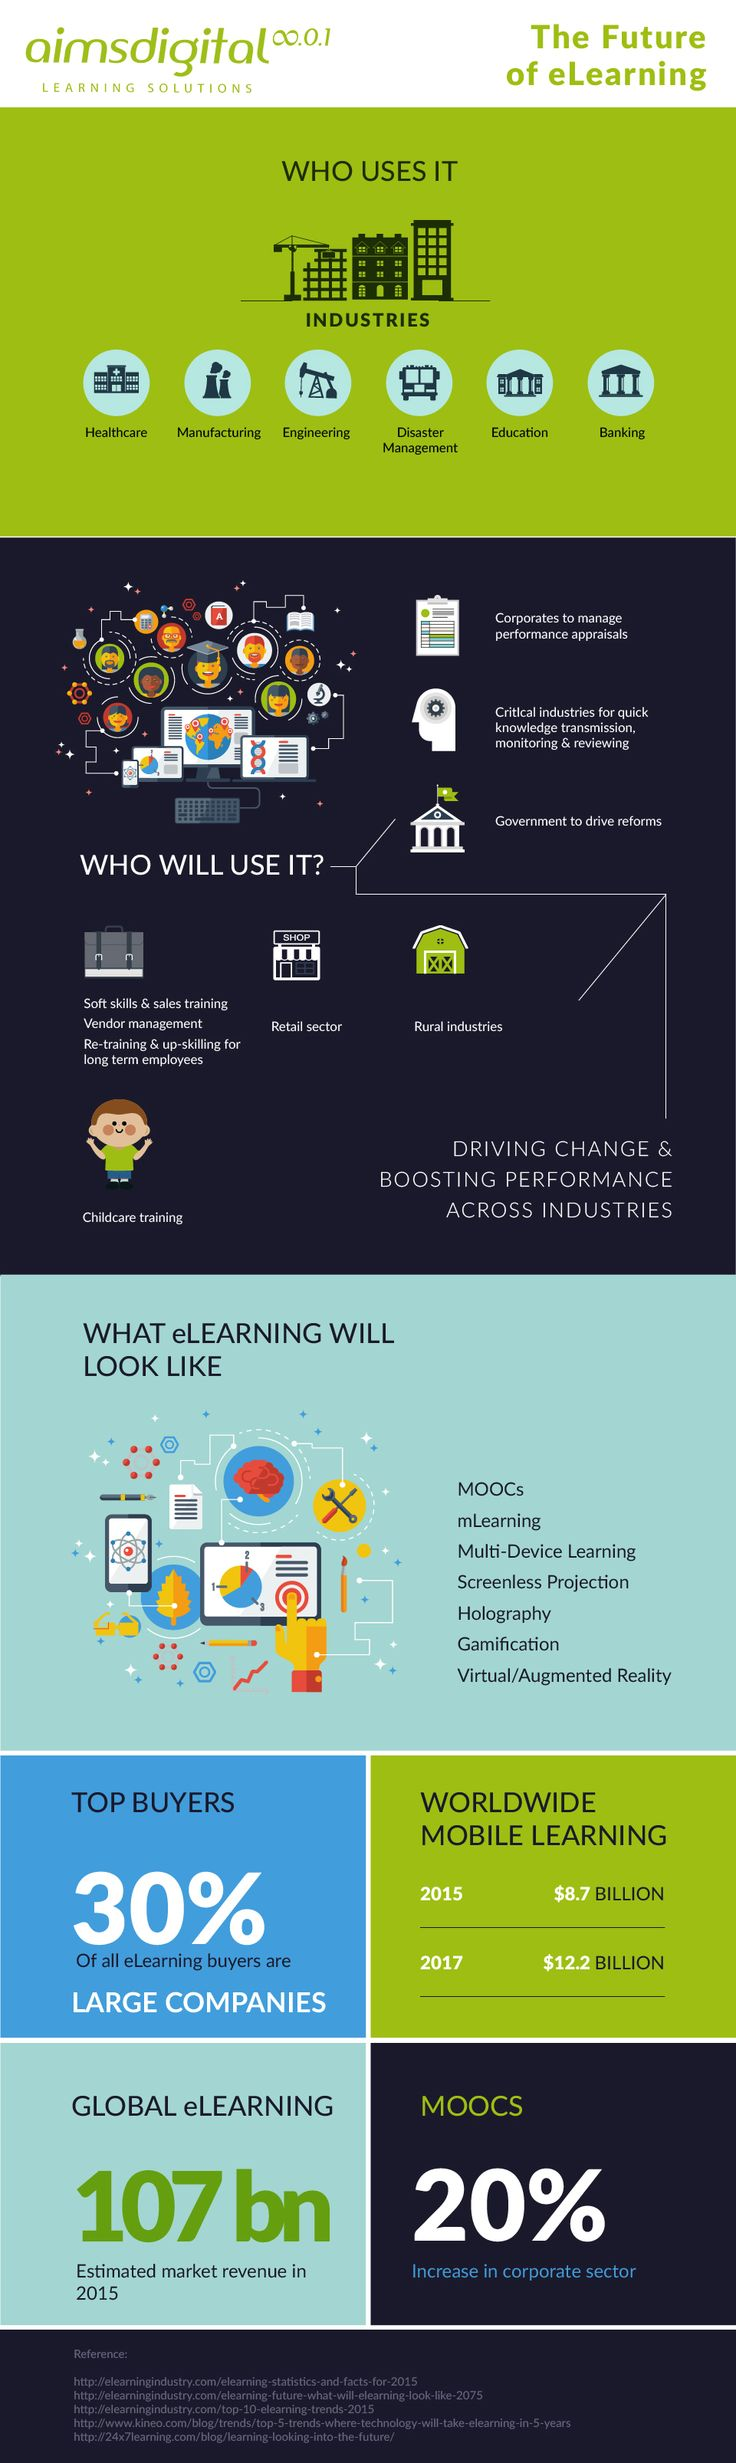 best images about online training e learning distance here is a peek into the future of elearning the possibilities are endless and